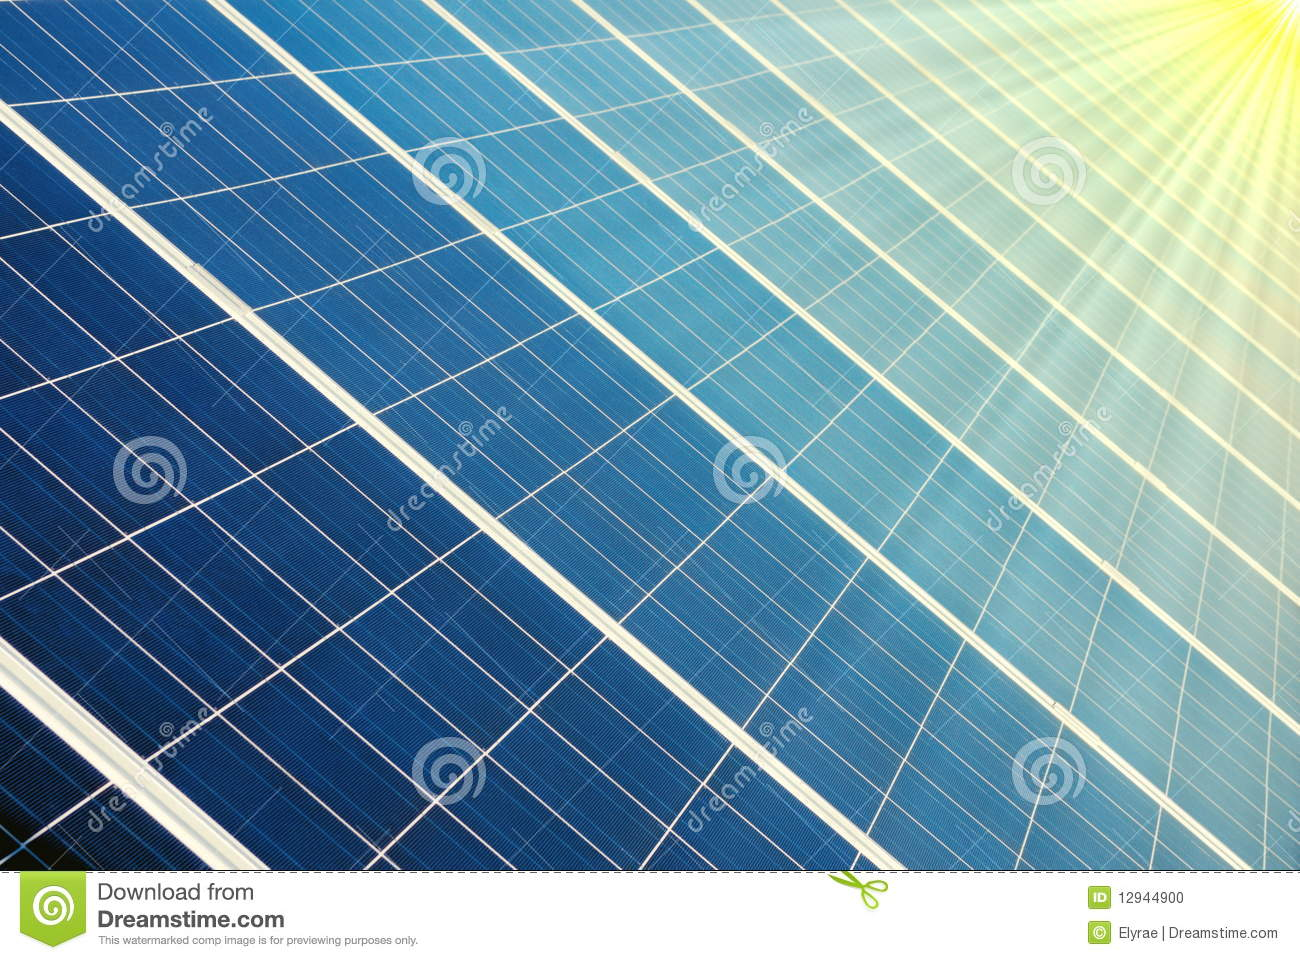 Photovoltaic cells and sun